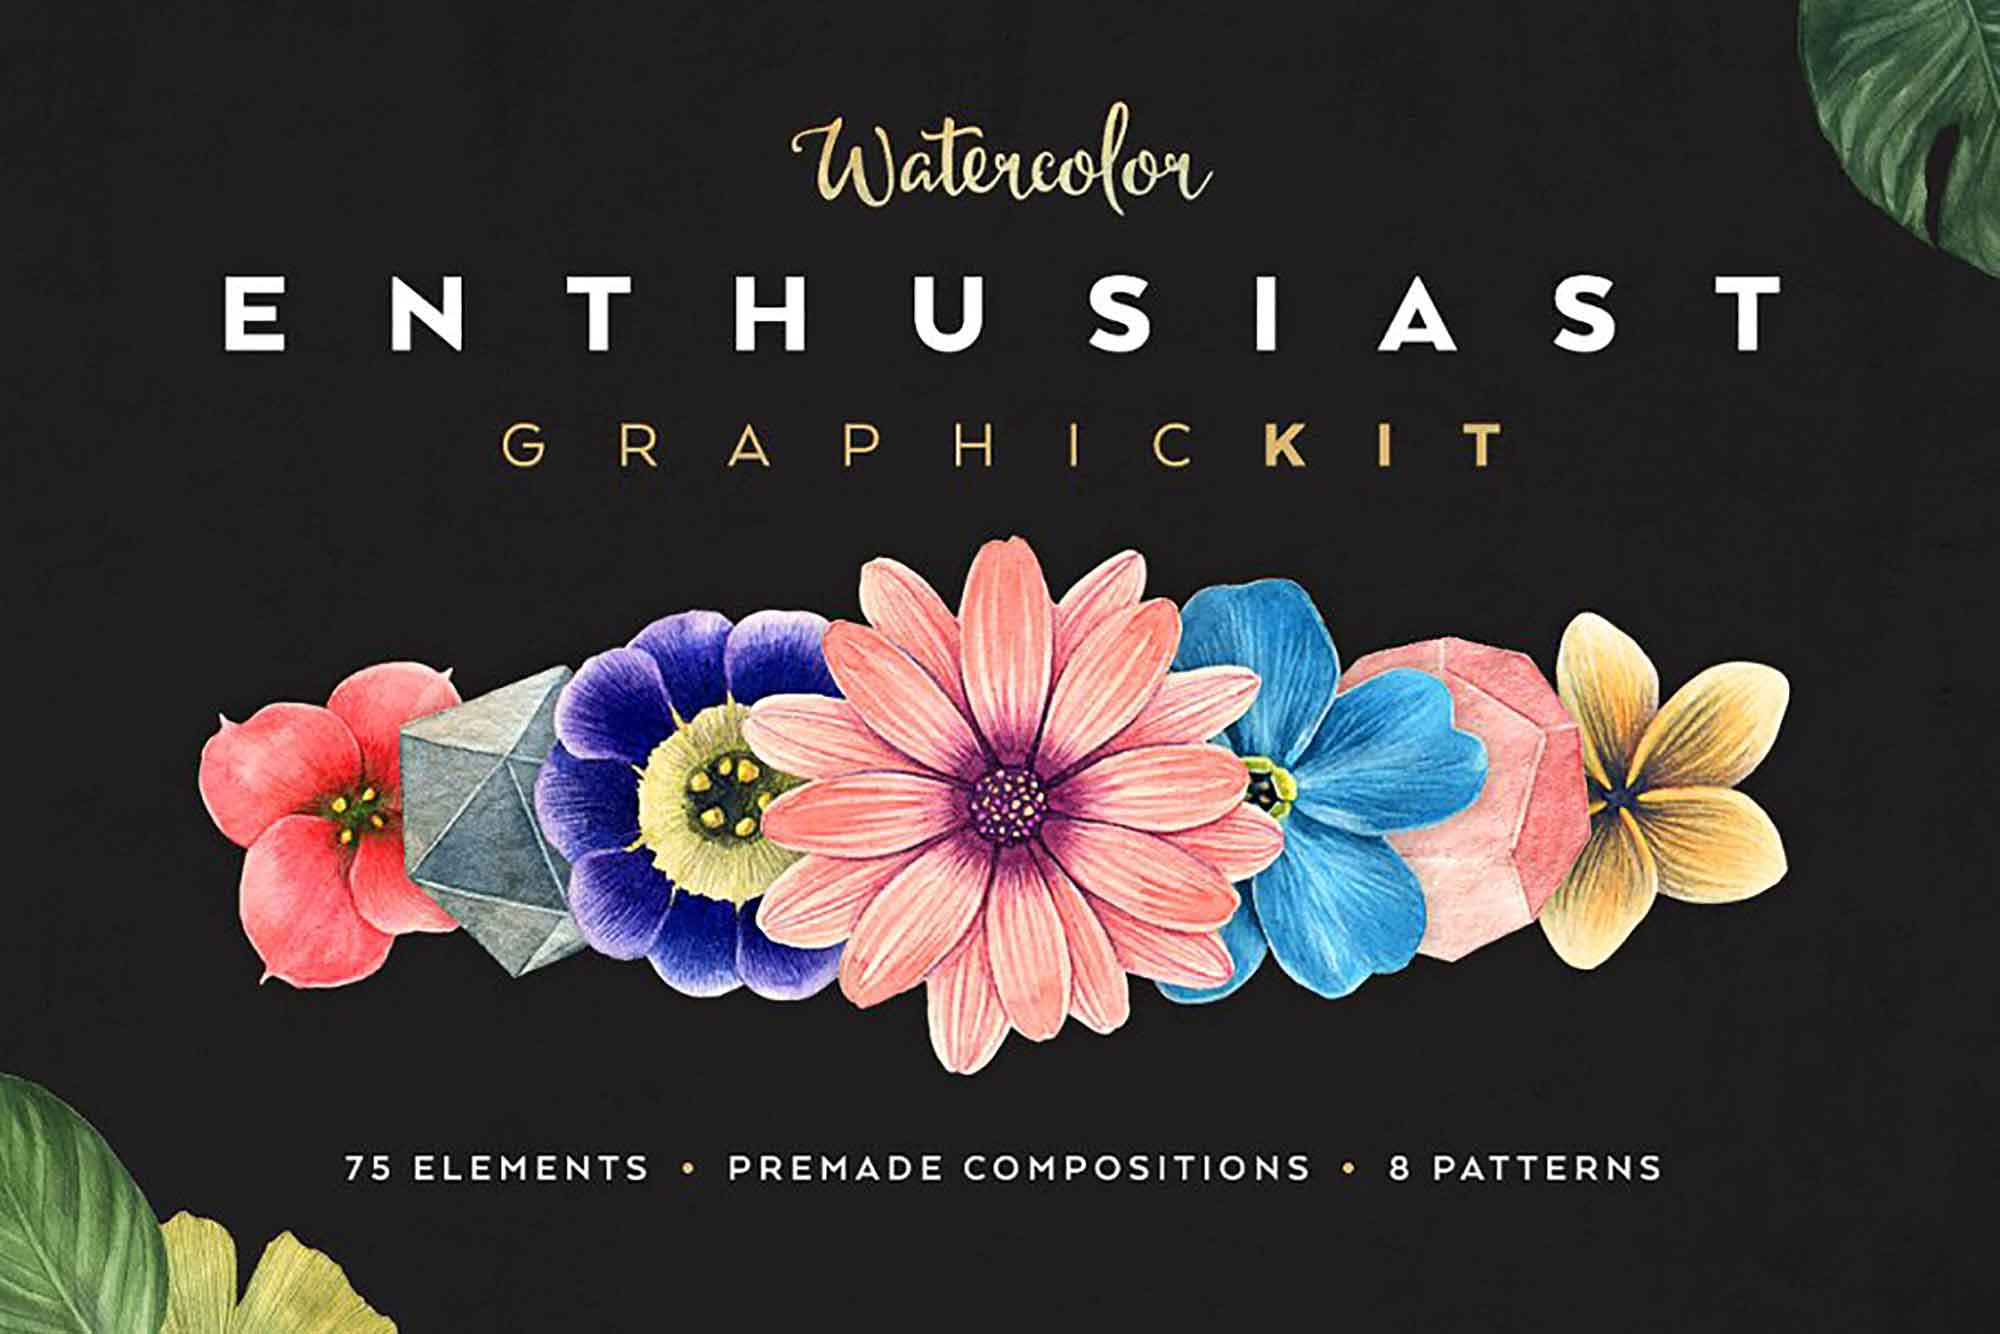 Watercolor Enthusiast Graphic